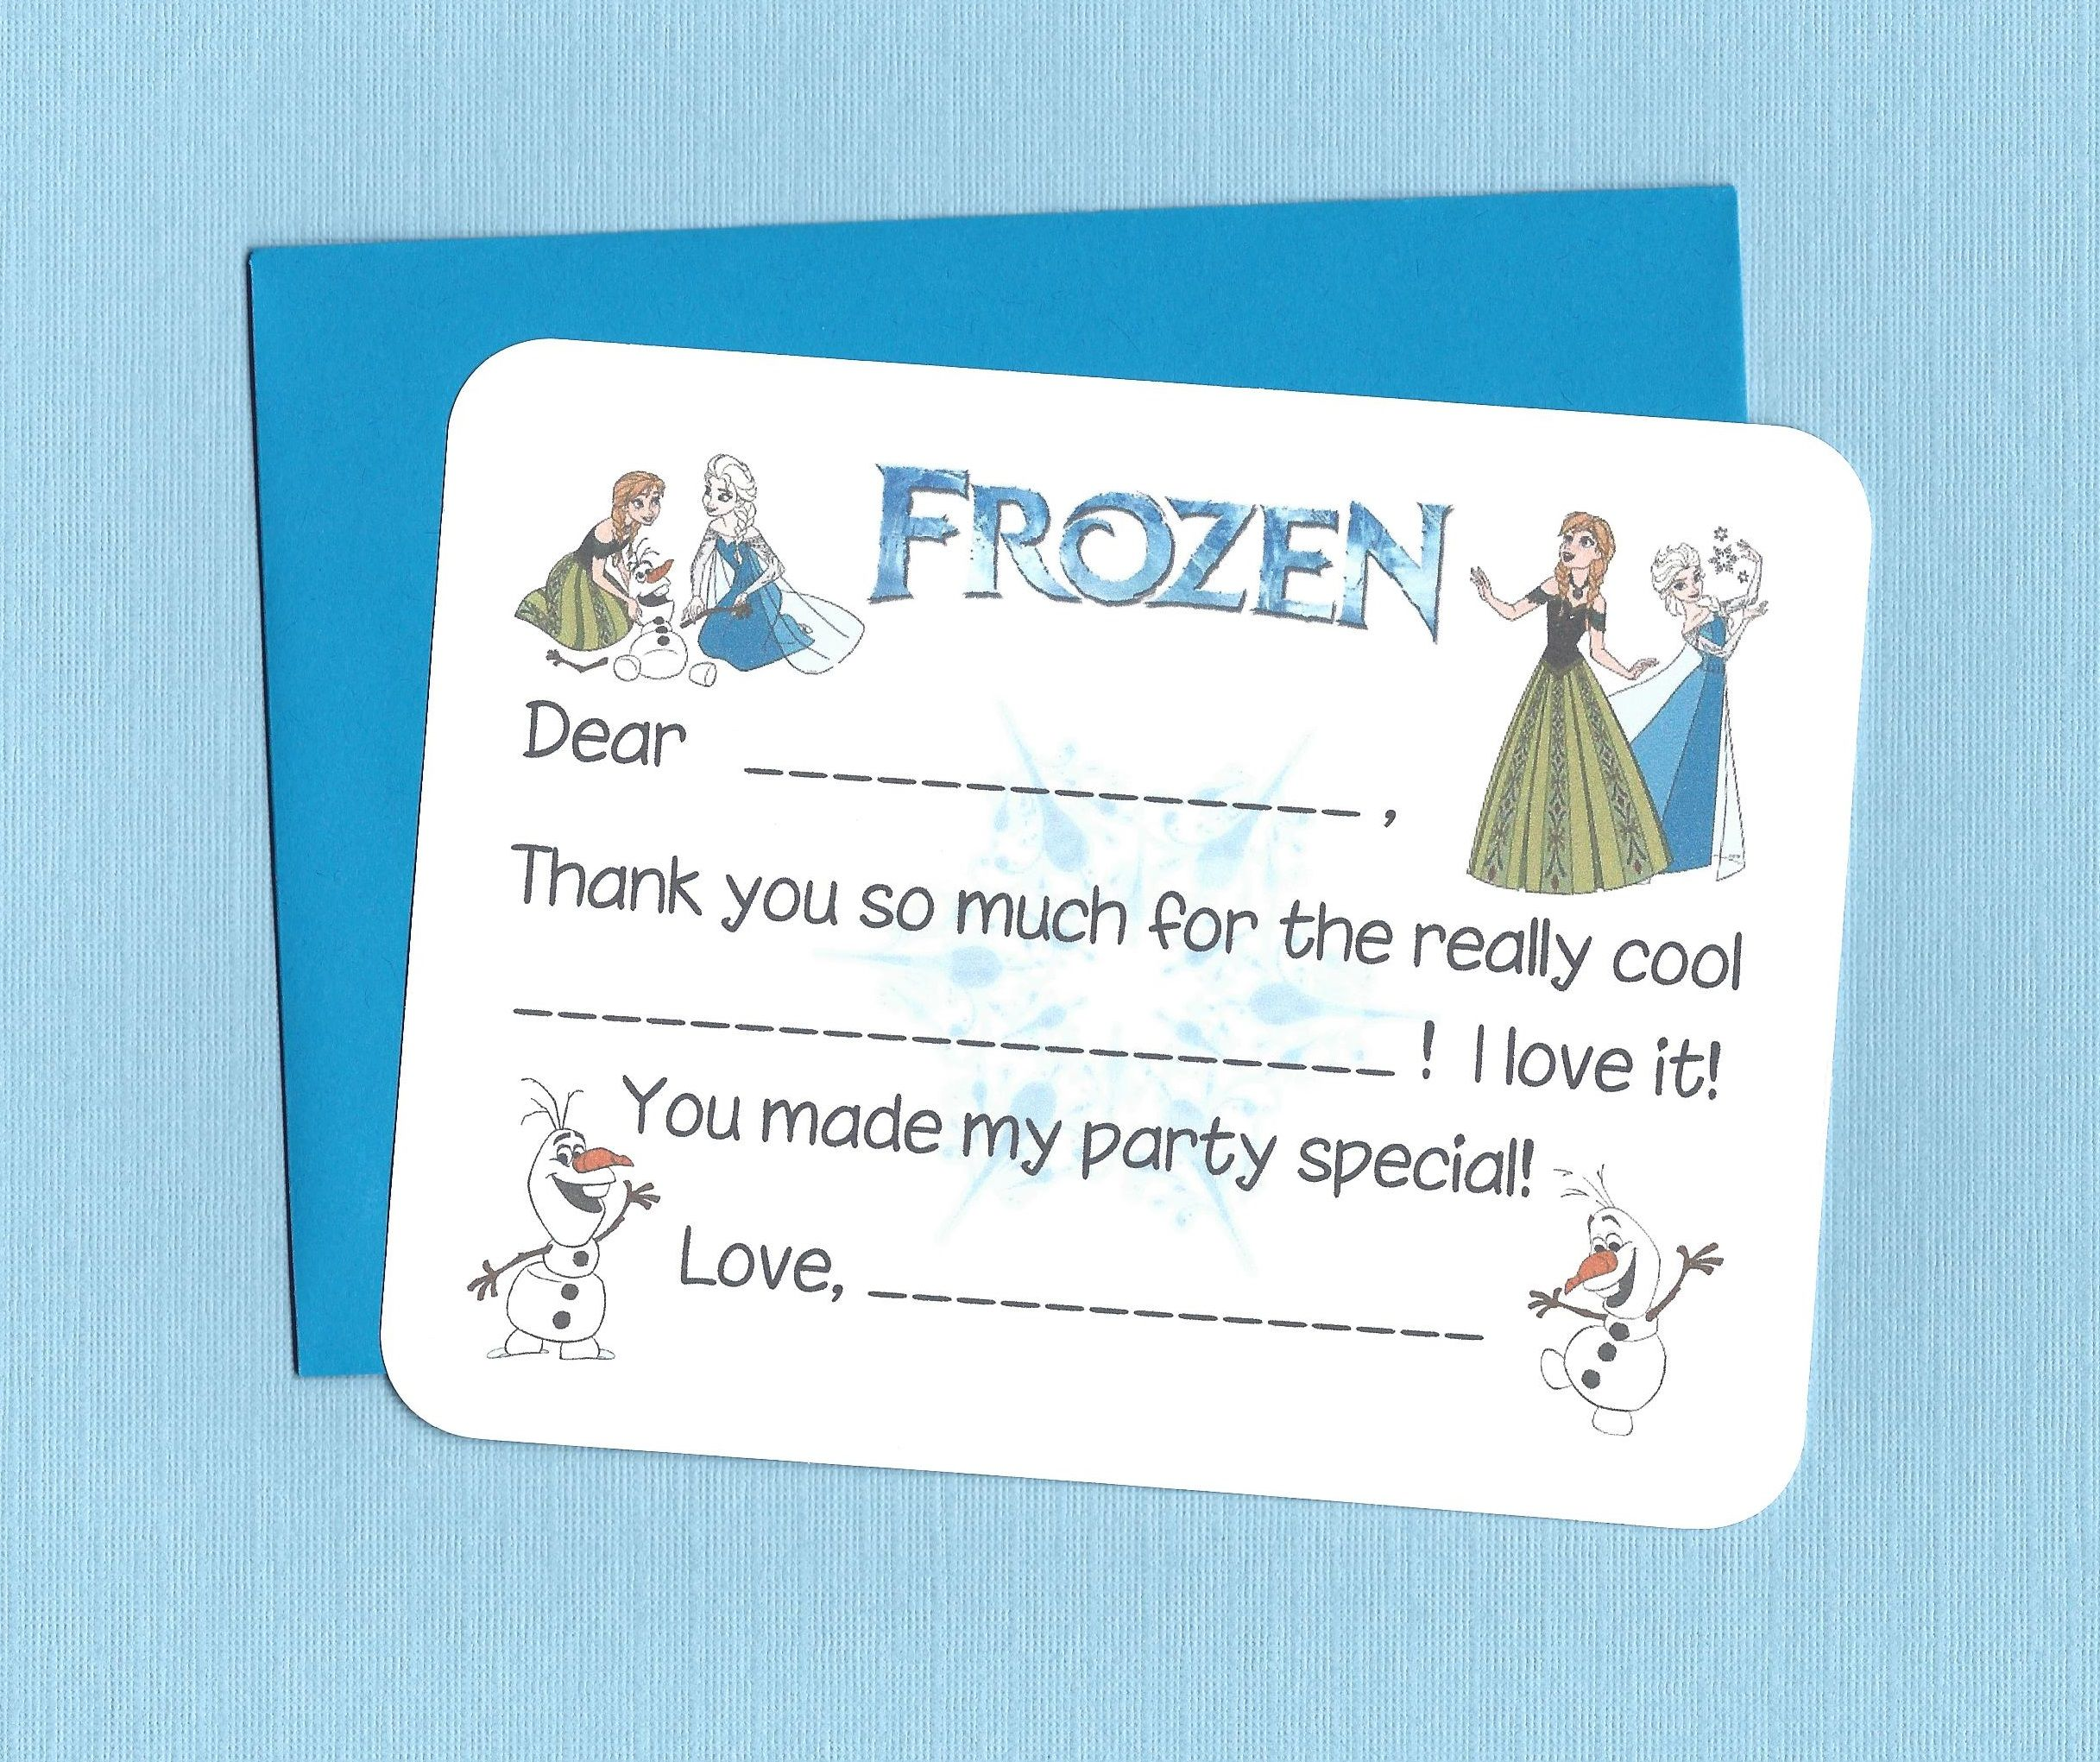 Frozen Thank you notes fill in the blank birthday cards easy